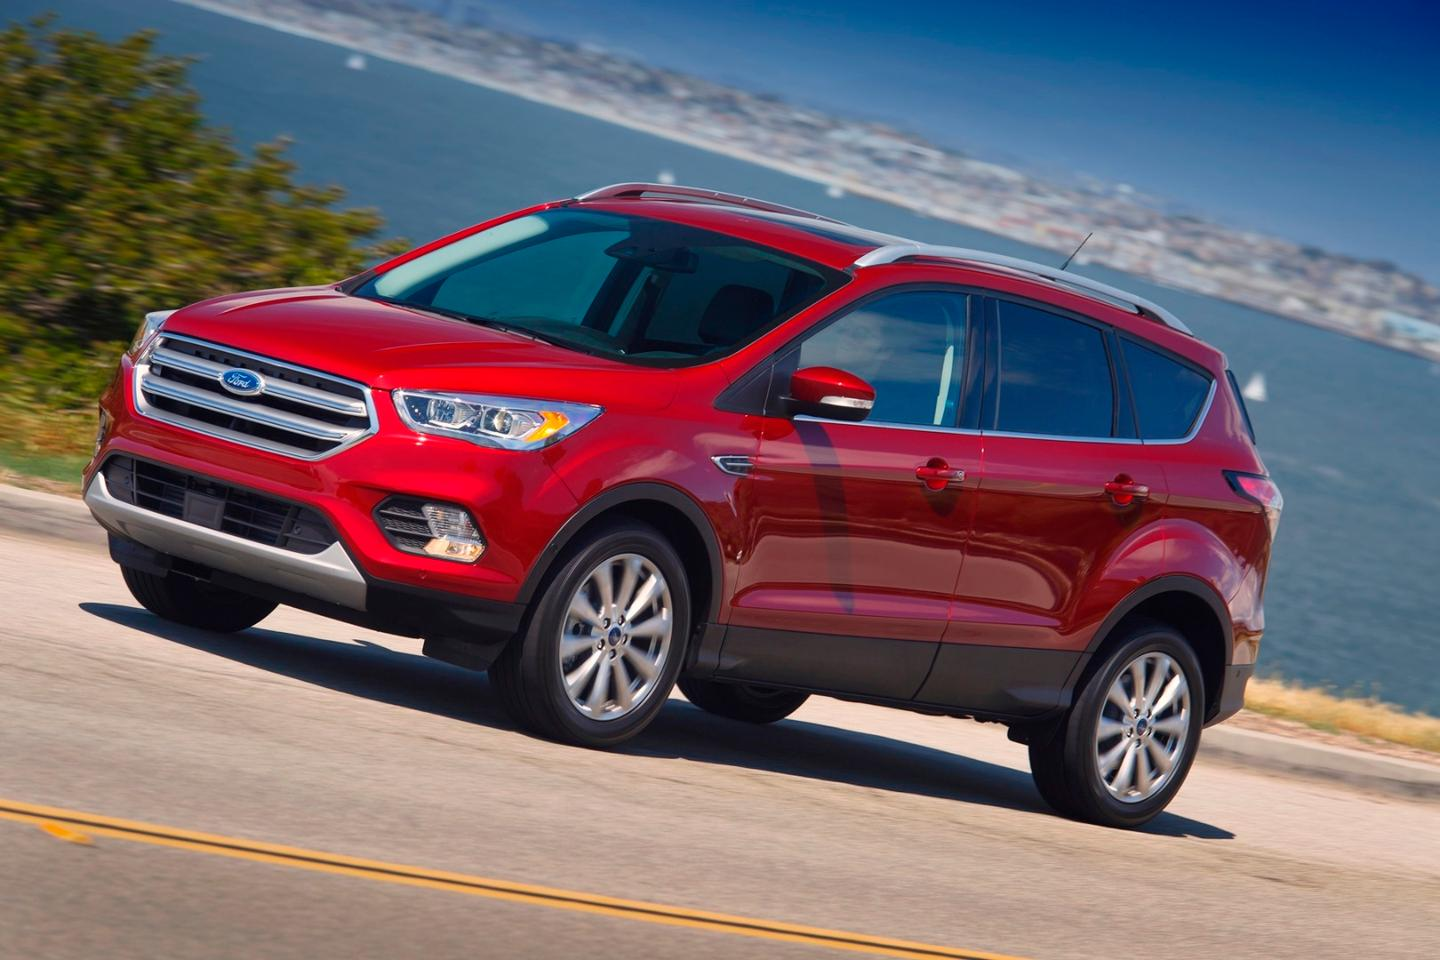 The 2017 Ford Escape is in showrooms from May